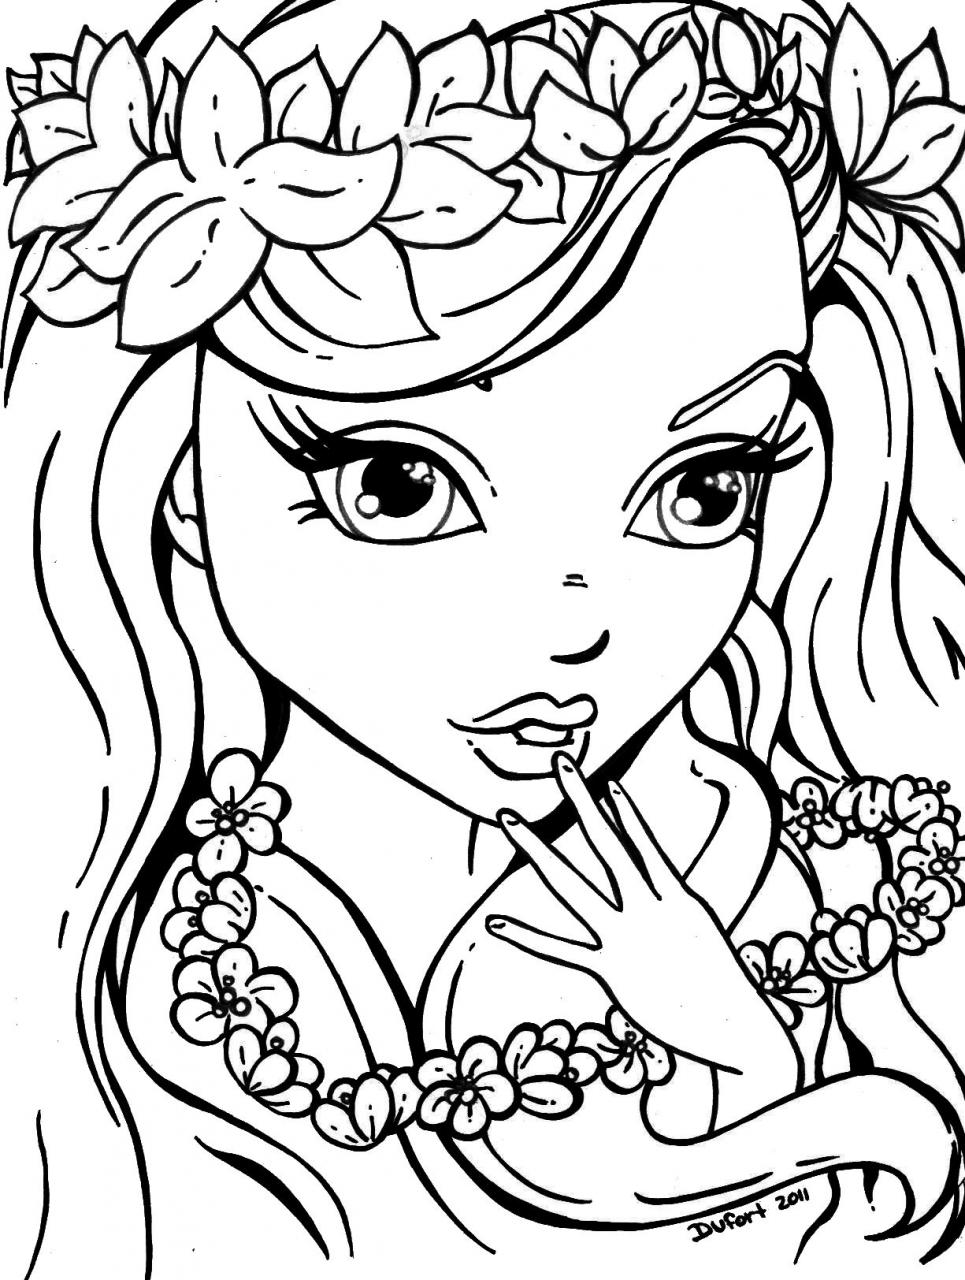 coloring for girls coloring pages for girls best coloring pages for kids for coloring girls